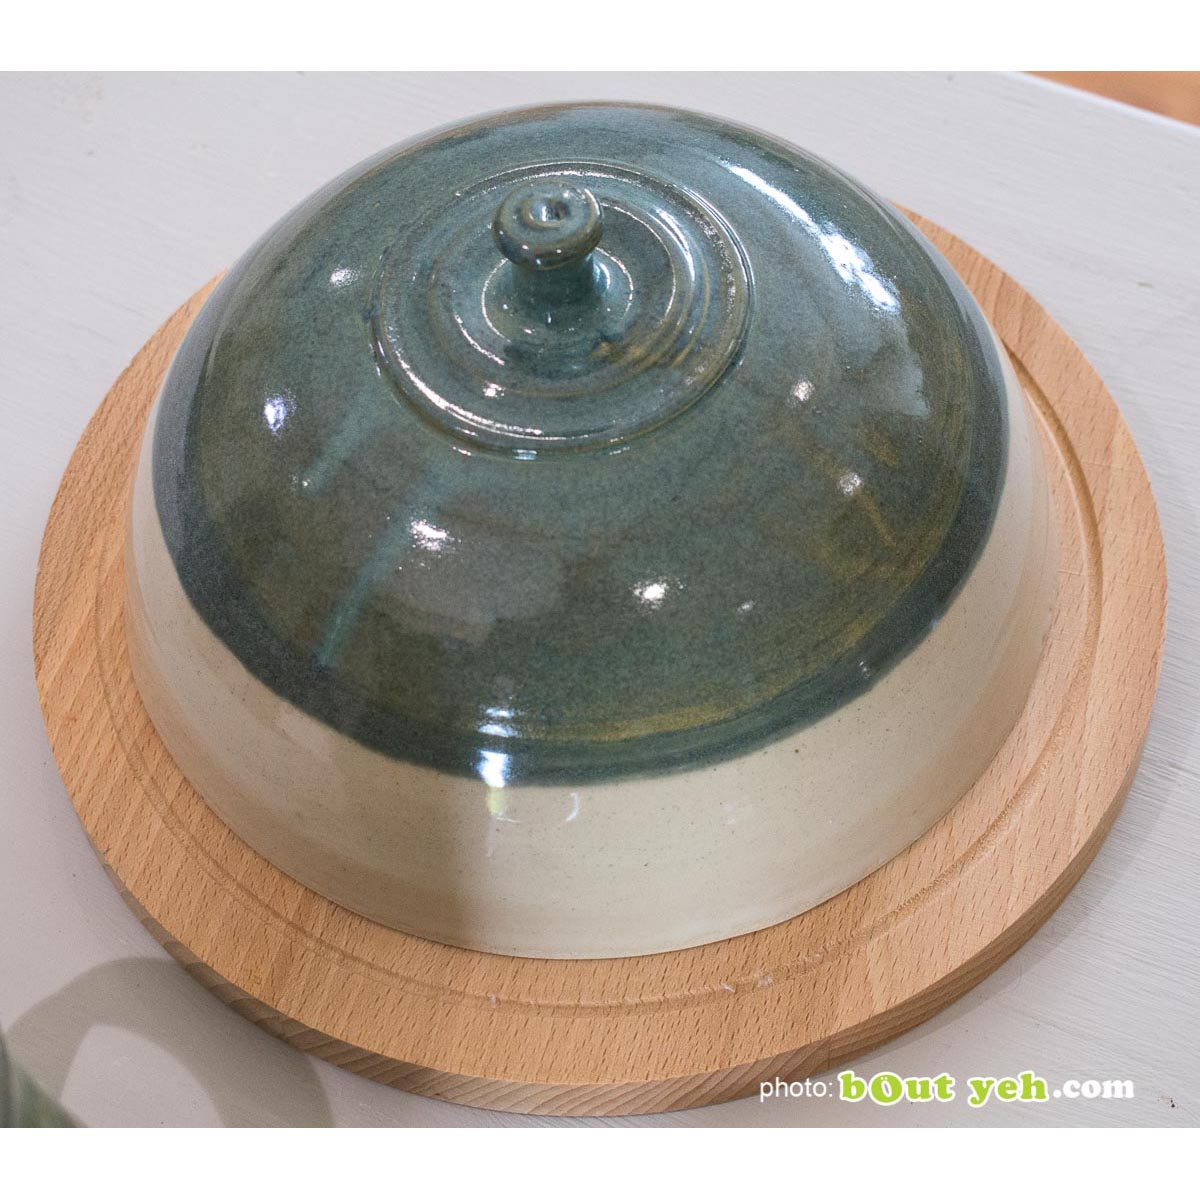 Green and cream cheeseboard bell and serving board - contemporary Irish ceramic pottery for sale. Photo 1468